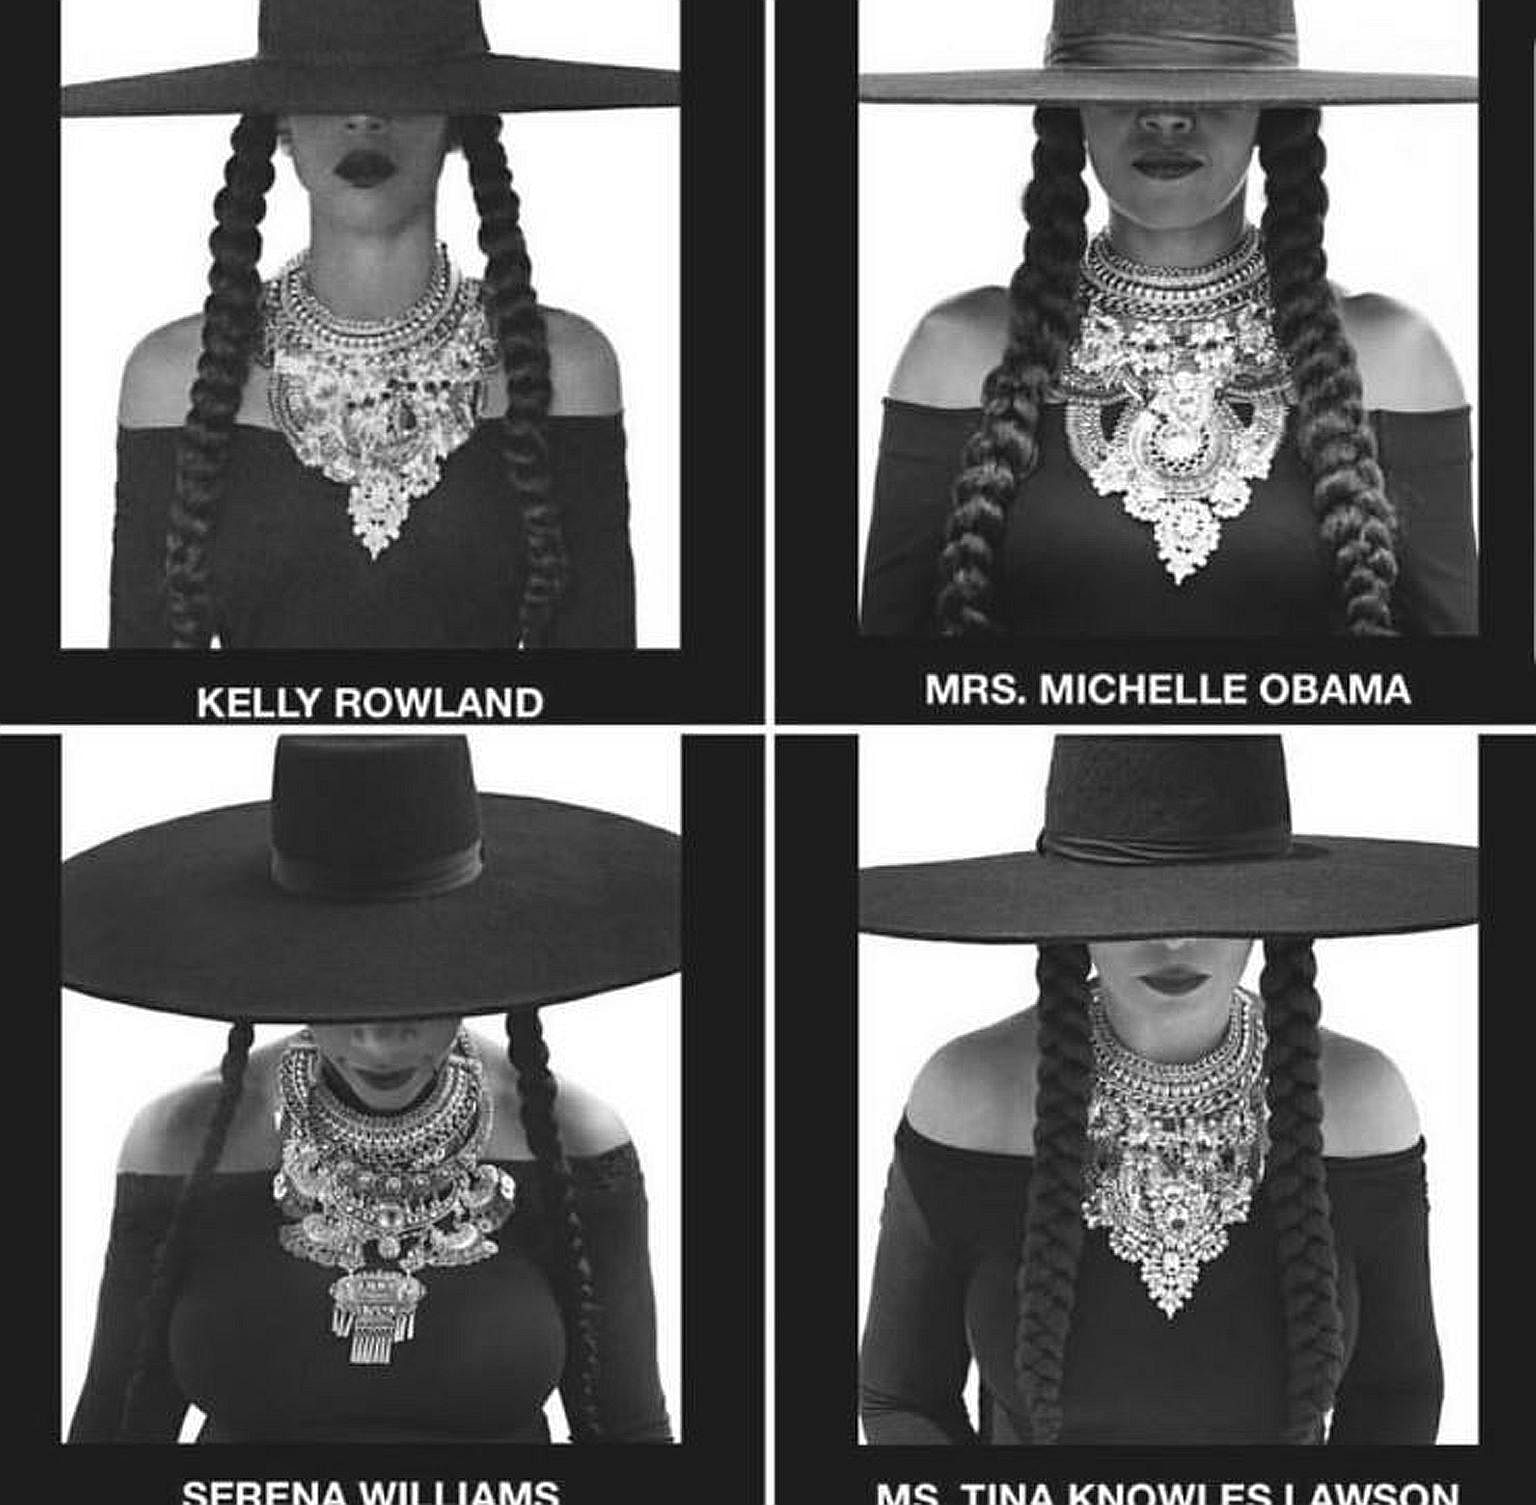 Mrs Michelle Obama was one of several women who dressed up in Beyonce's iconic looks from her Formation video, as a birthday tribute to her.